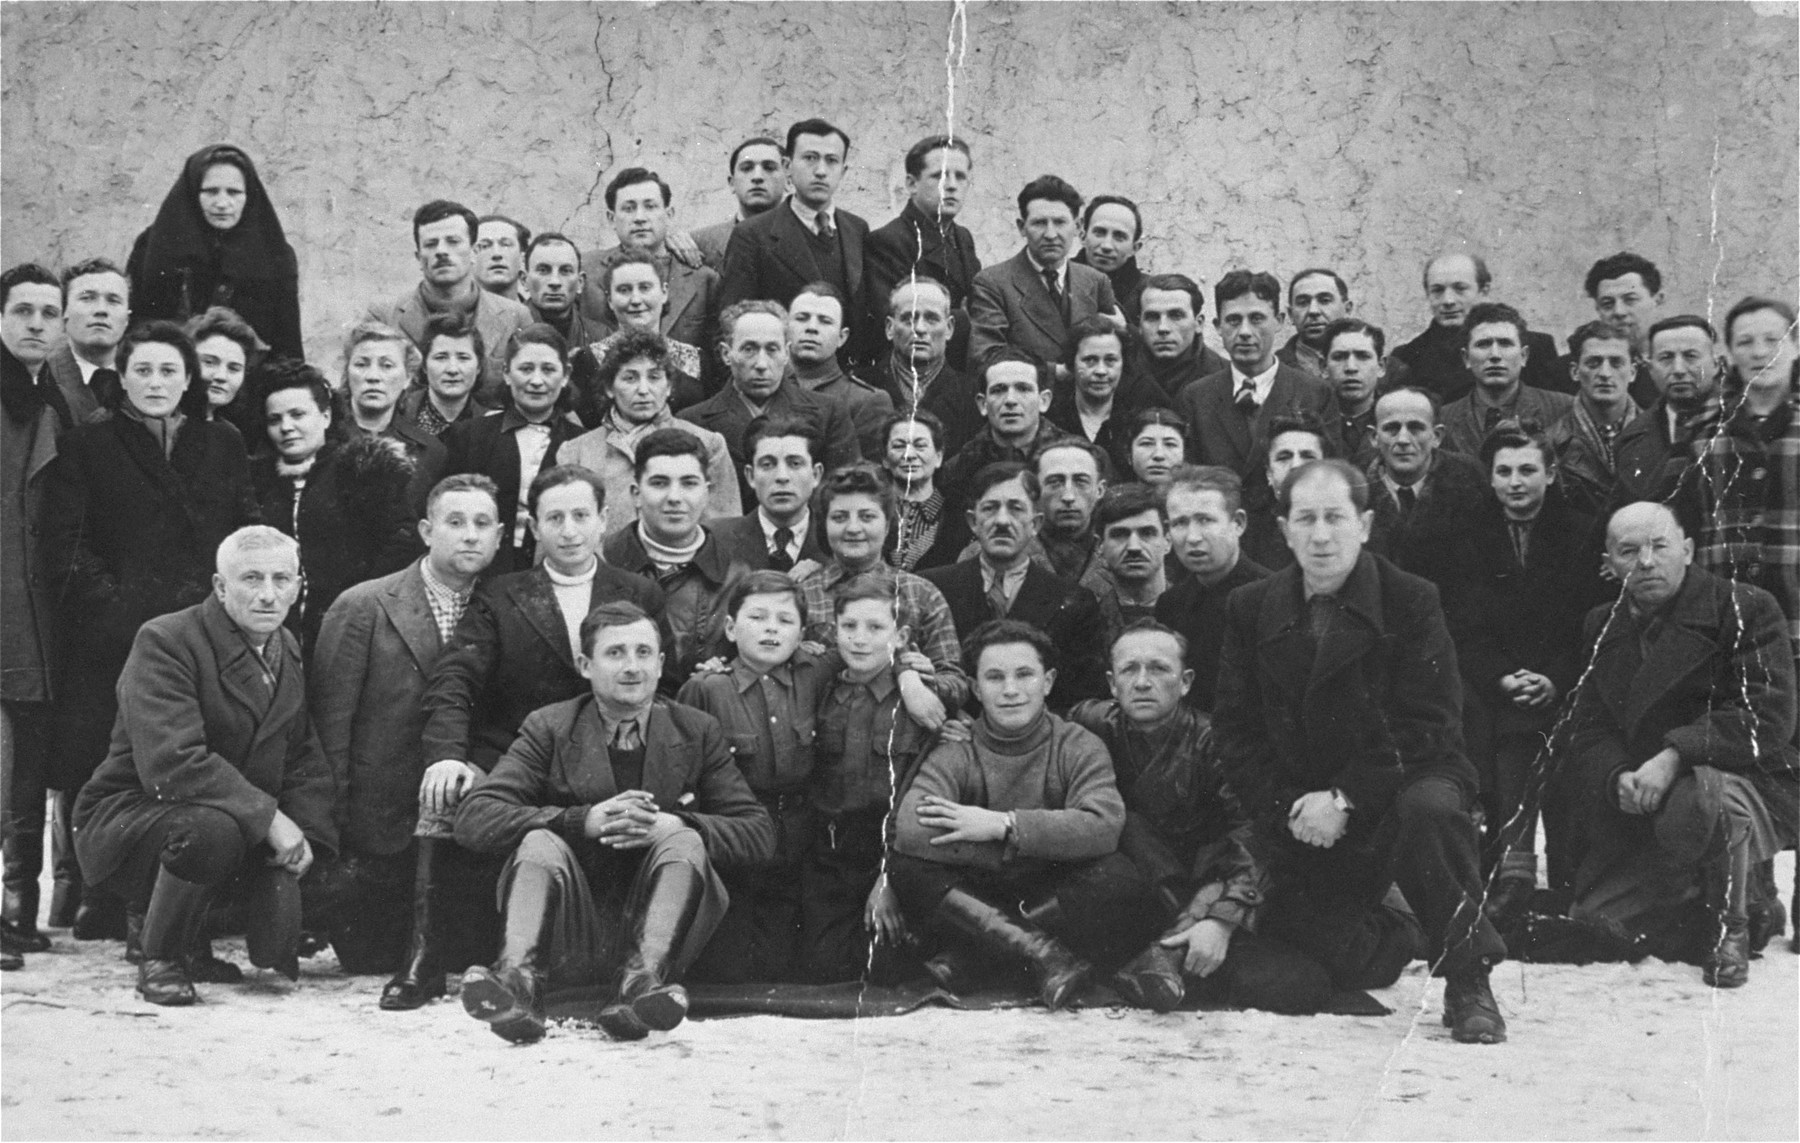 Group portrait of Polish Jewish survivors in Kielce.  Many of them were killed one year later in the pogrom in 1946.  Samuel Rutkowski and his father Moshe Rutkowski have been tentatively identified (first row, second from the right, wearing a turtleneck; and second row, third from the right with a mustache.)